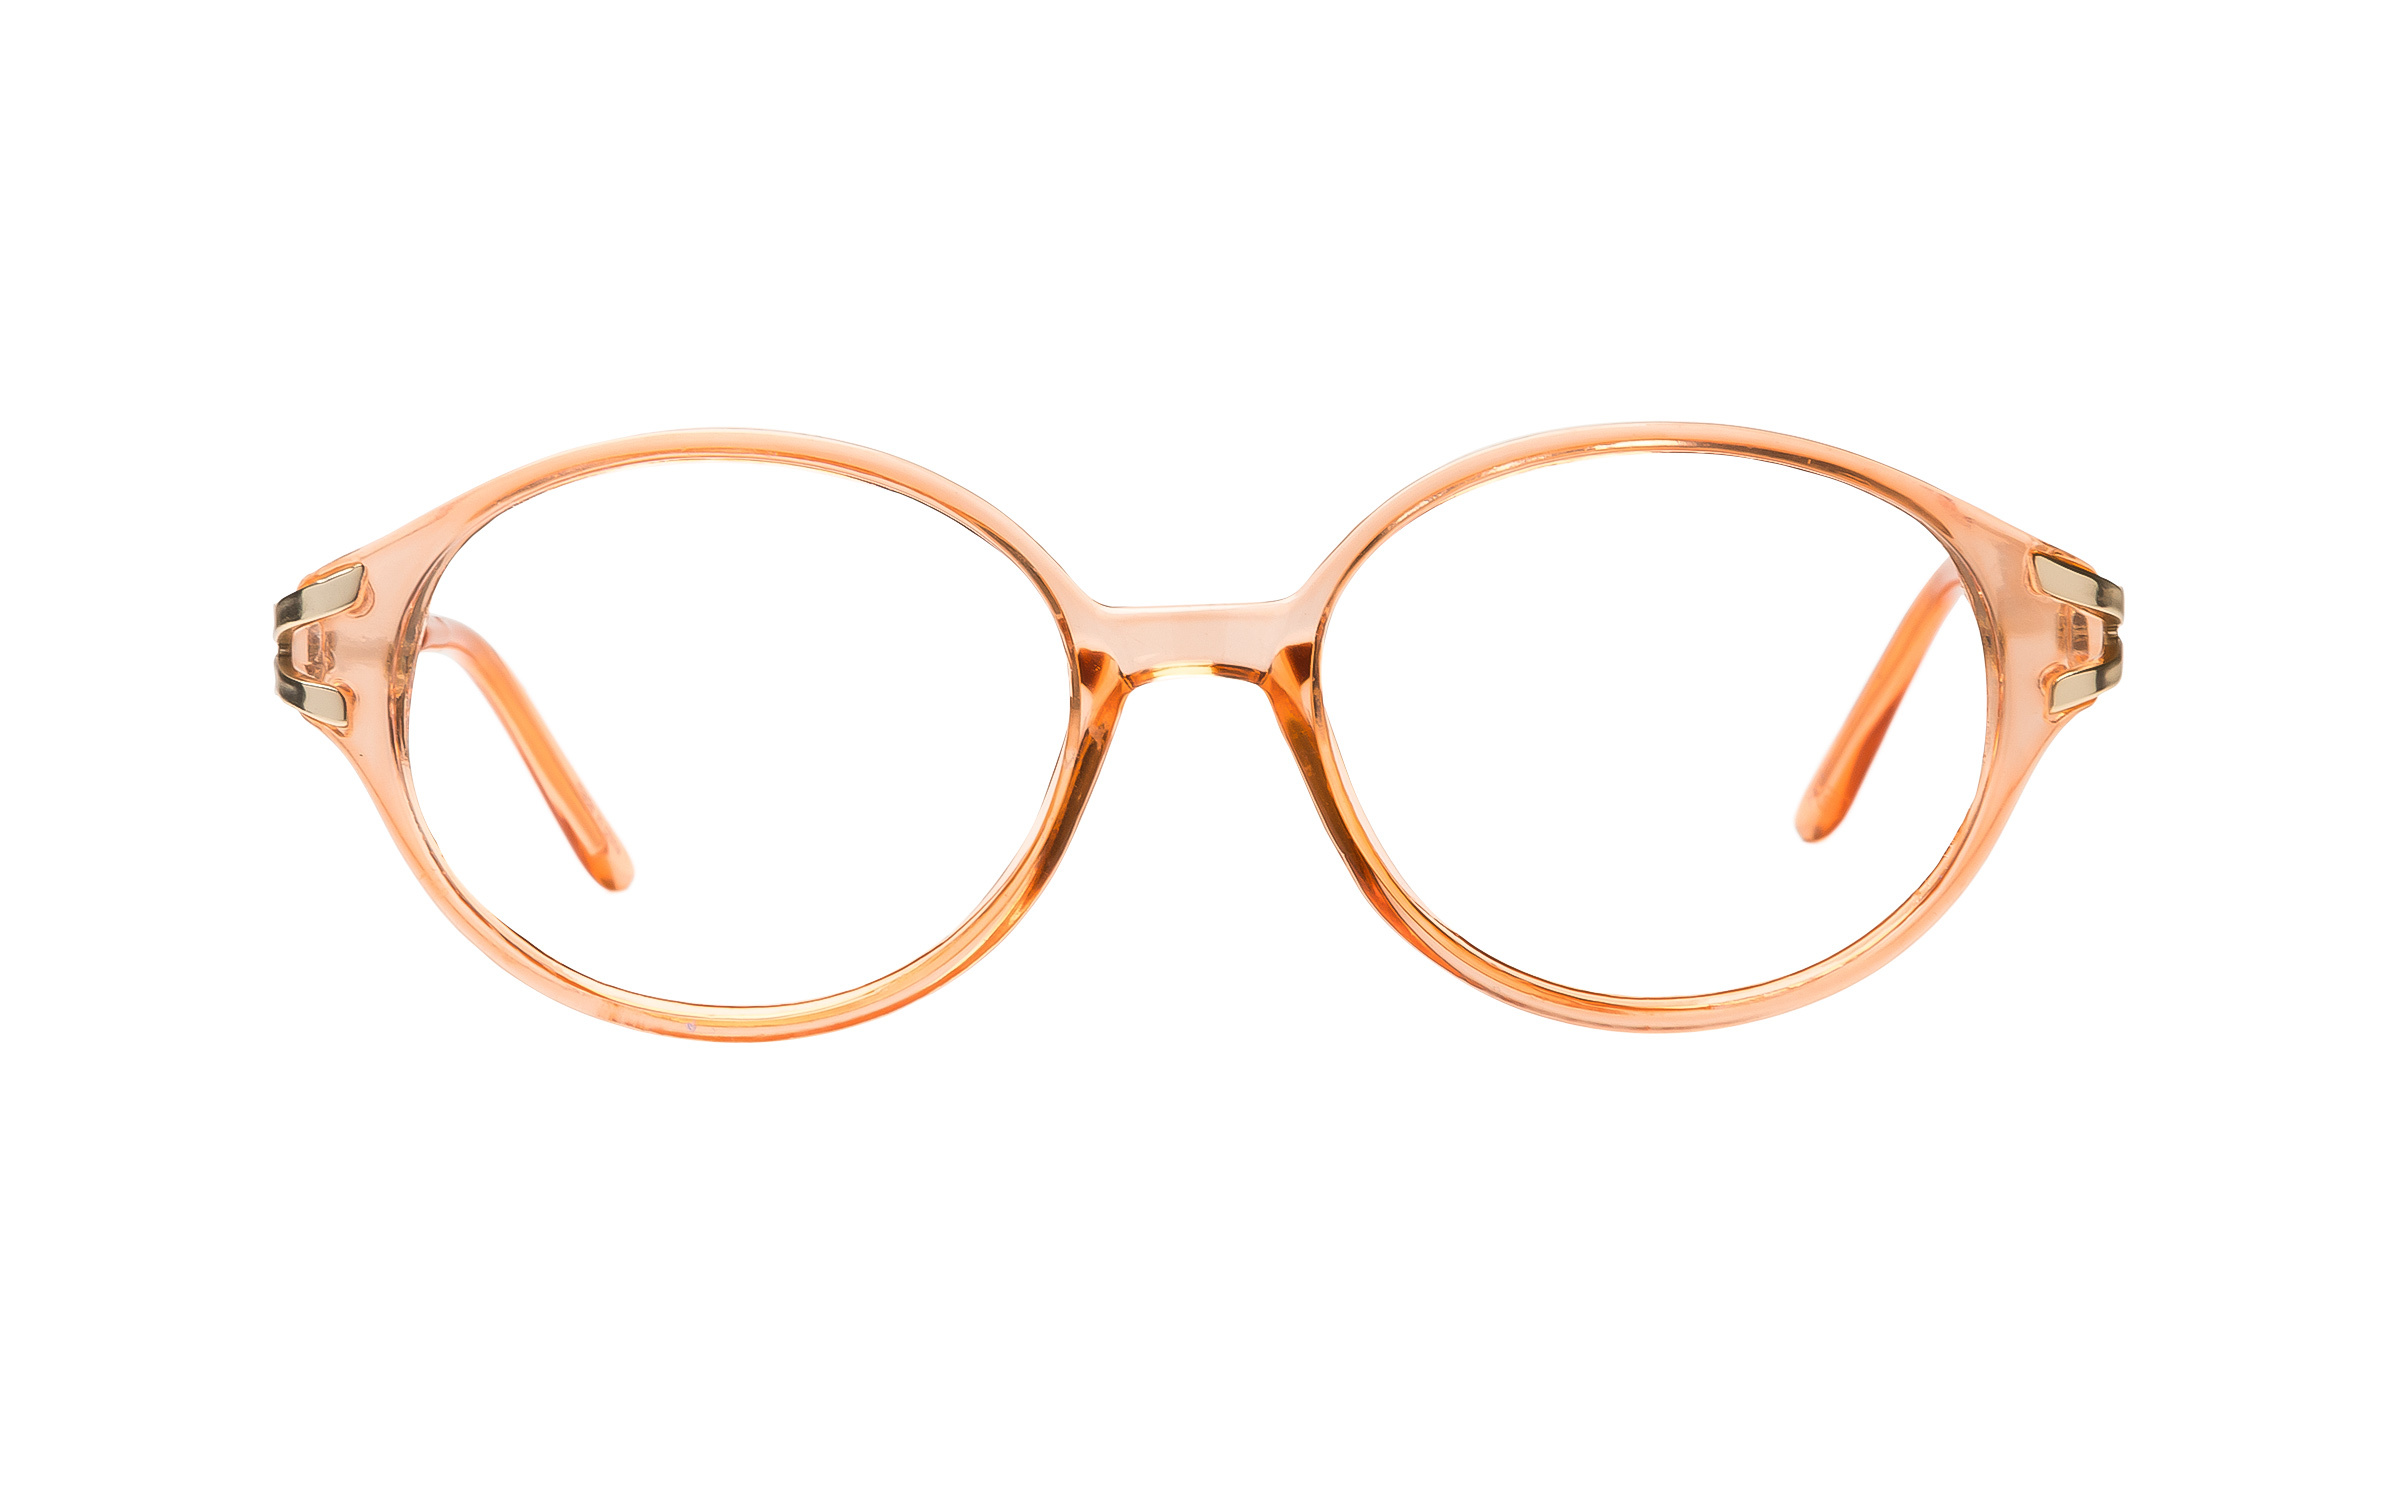 Clearly Basics Sakami (51) Eyeglasses and Frame in Blush Pink/Clear | Plastic - Online